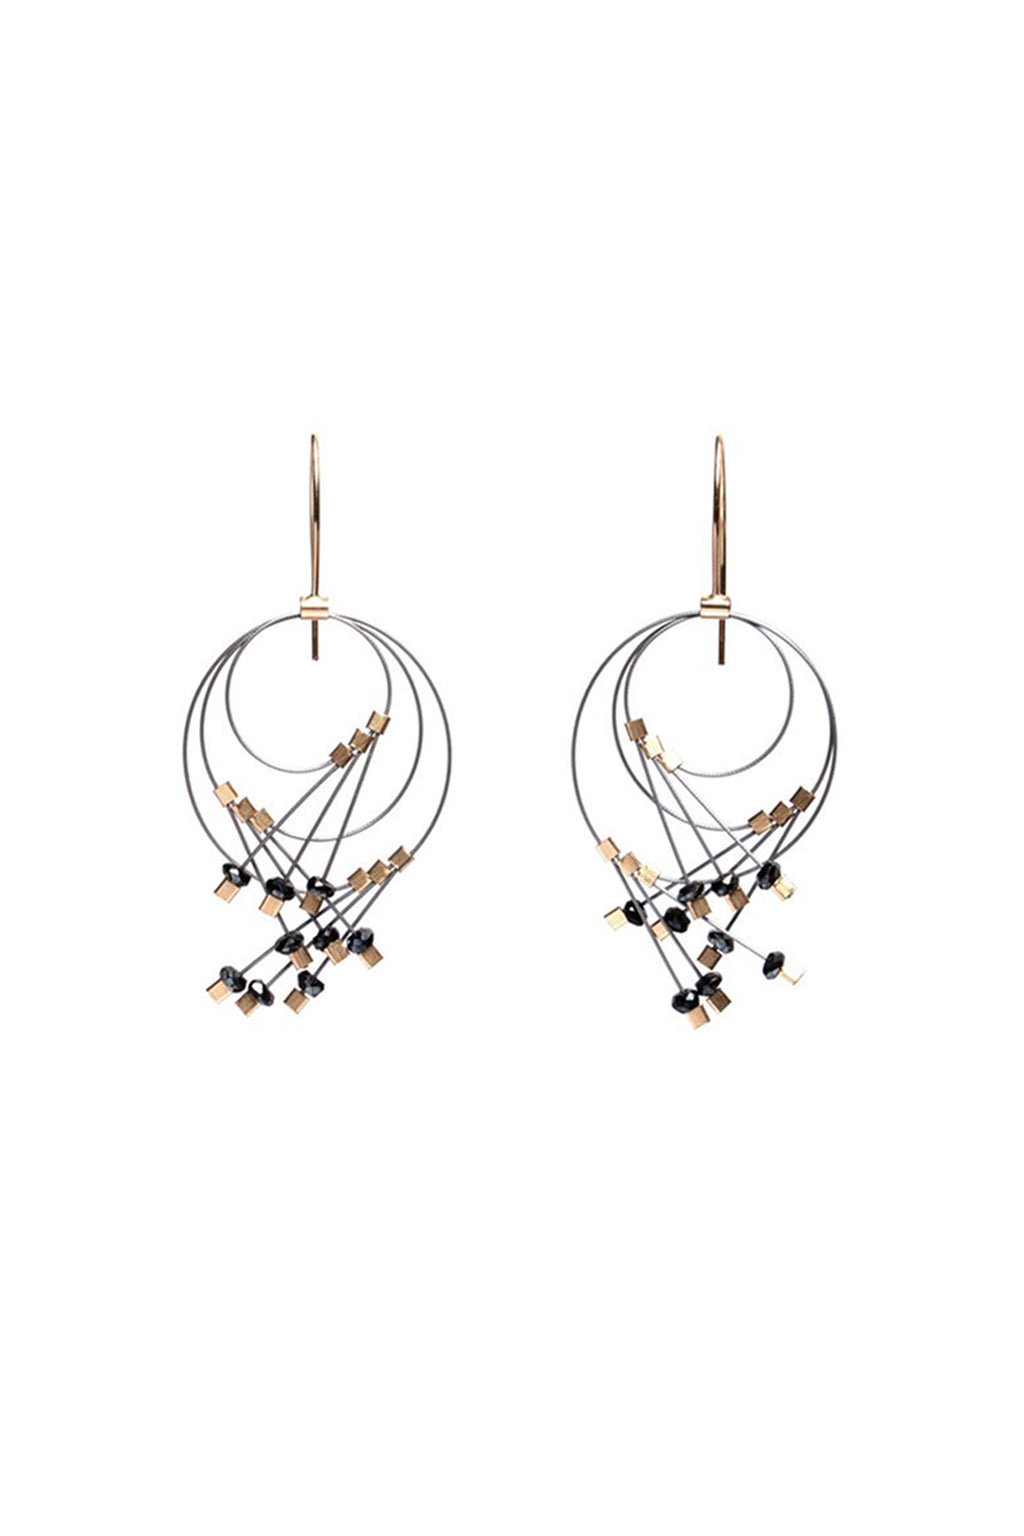 Vertigo Earrings in Spinel/Gunmetal